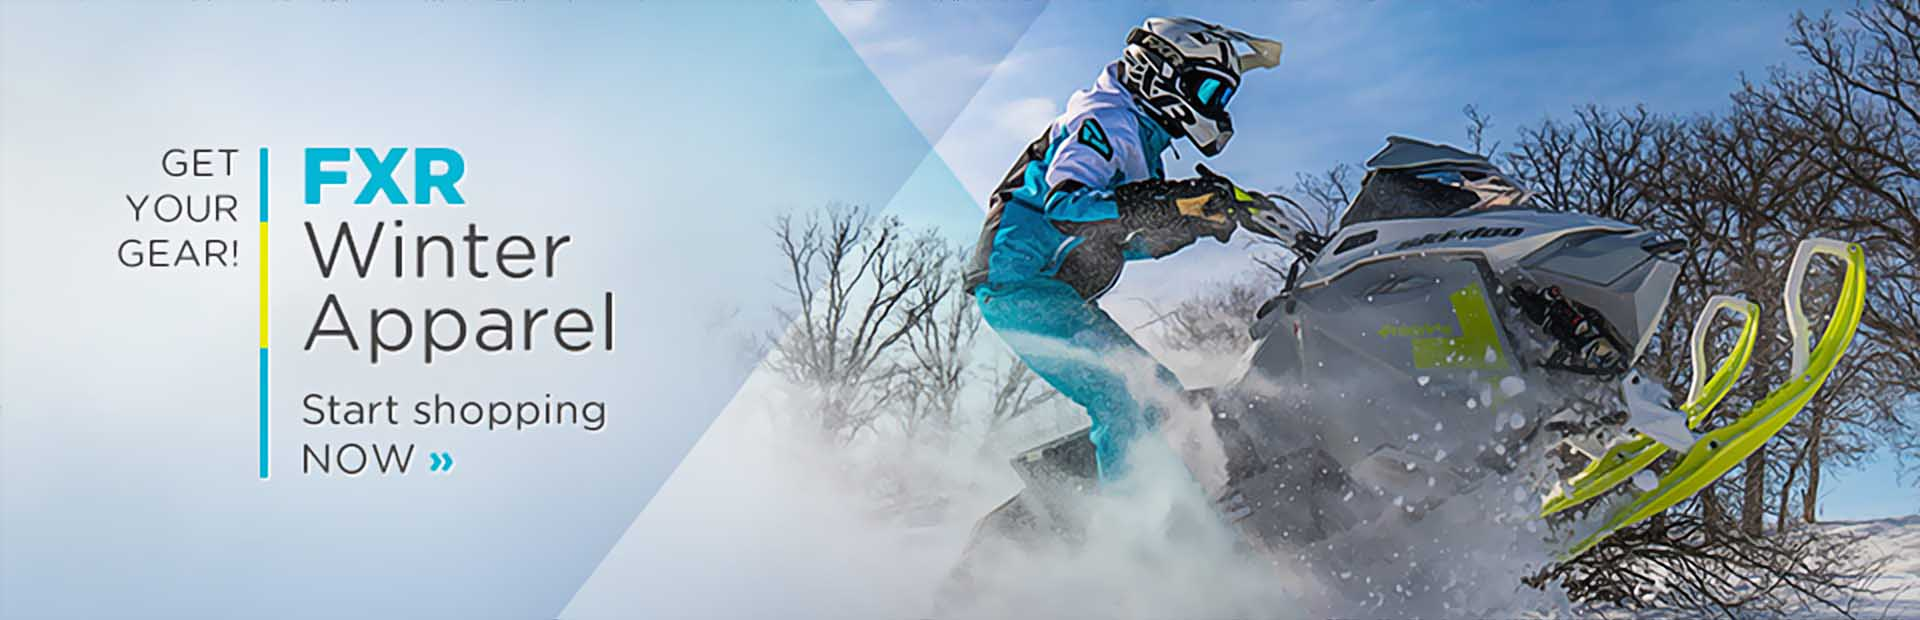 FXR Winter Apparel: Click here to shop online.